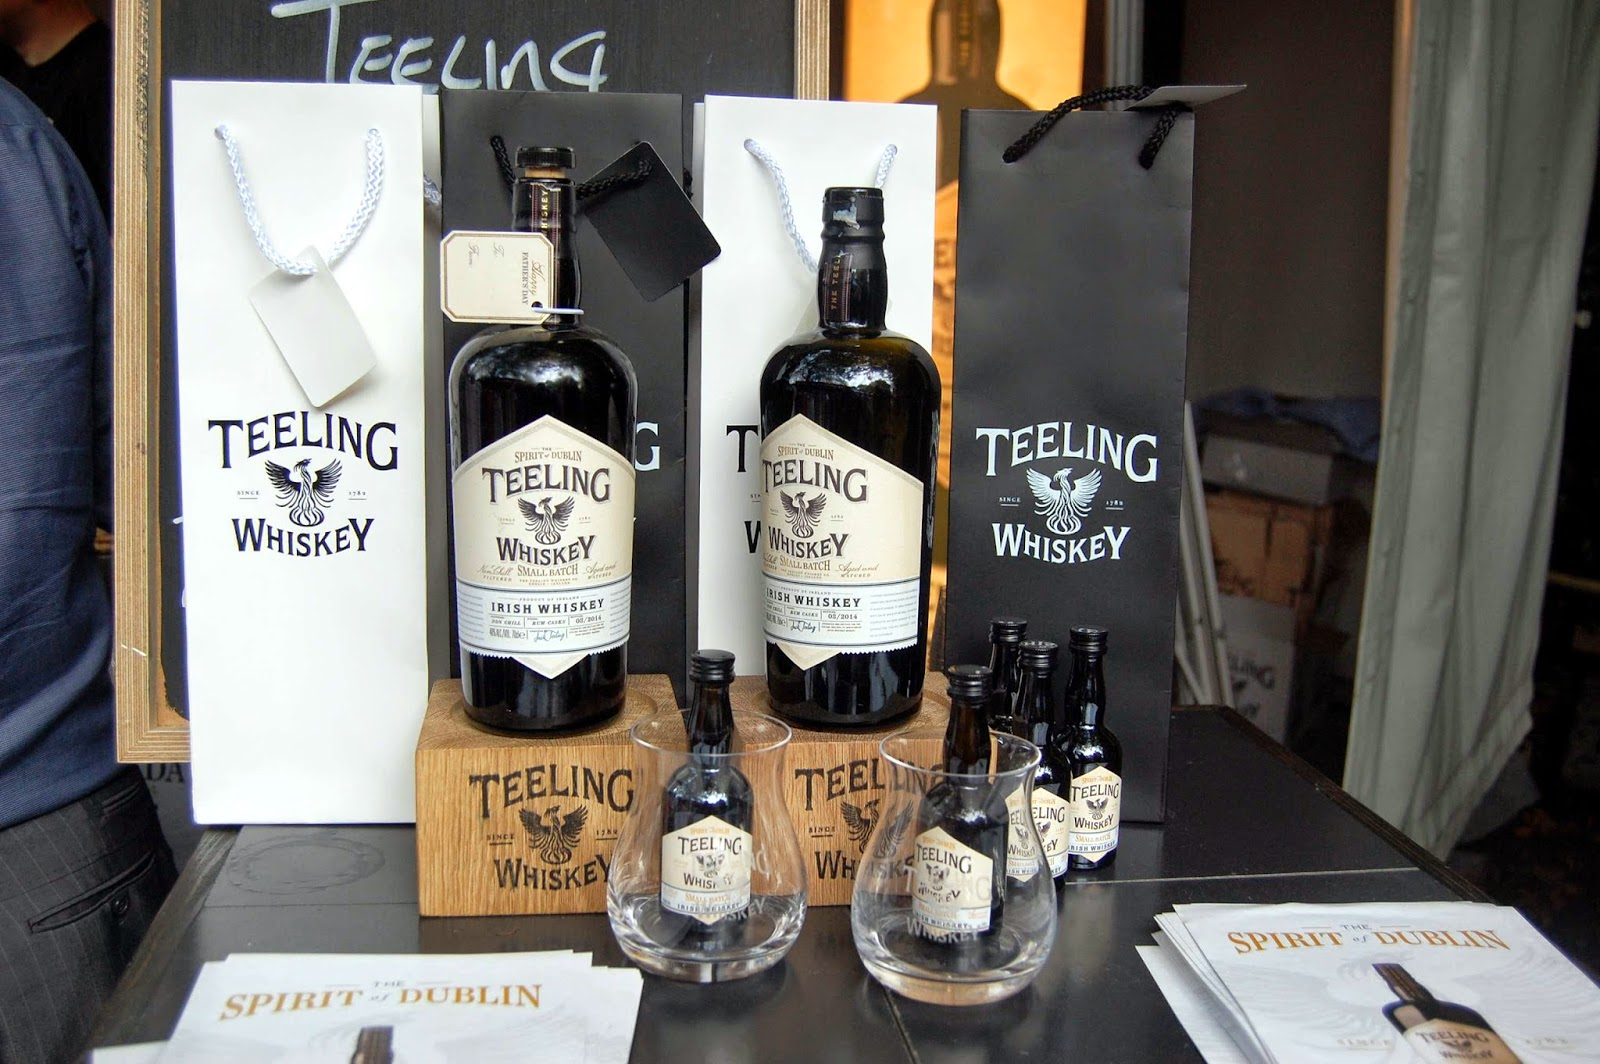 Stitch & Bear - Taste of Dublin 2014 - Teelings whiskey